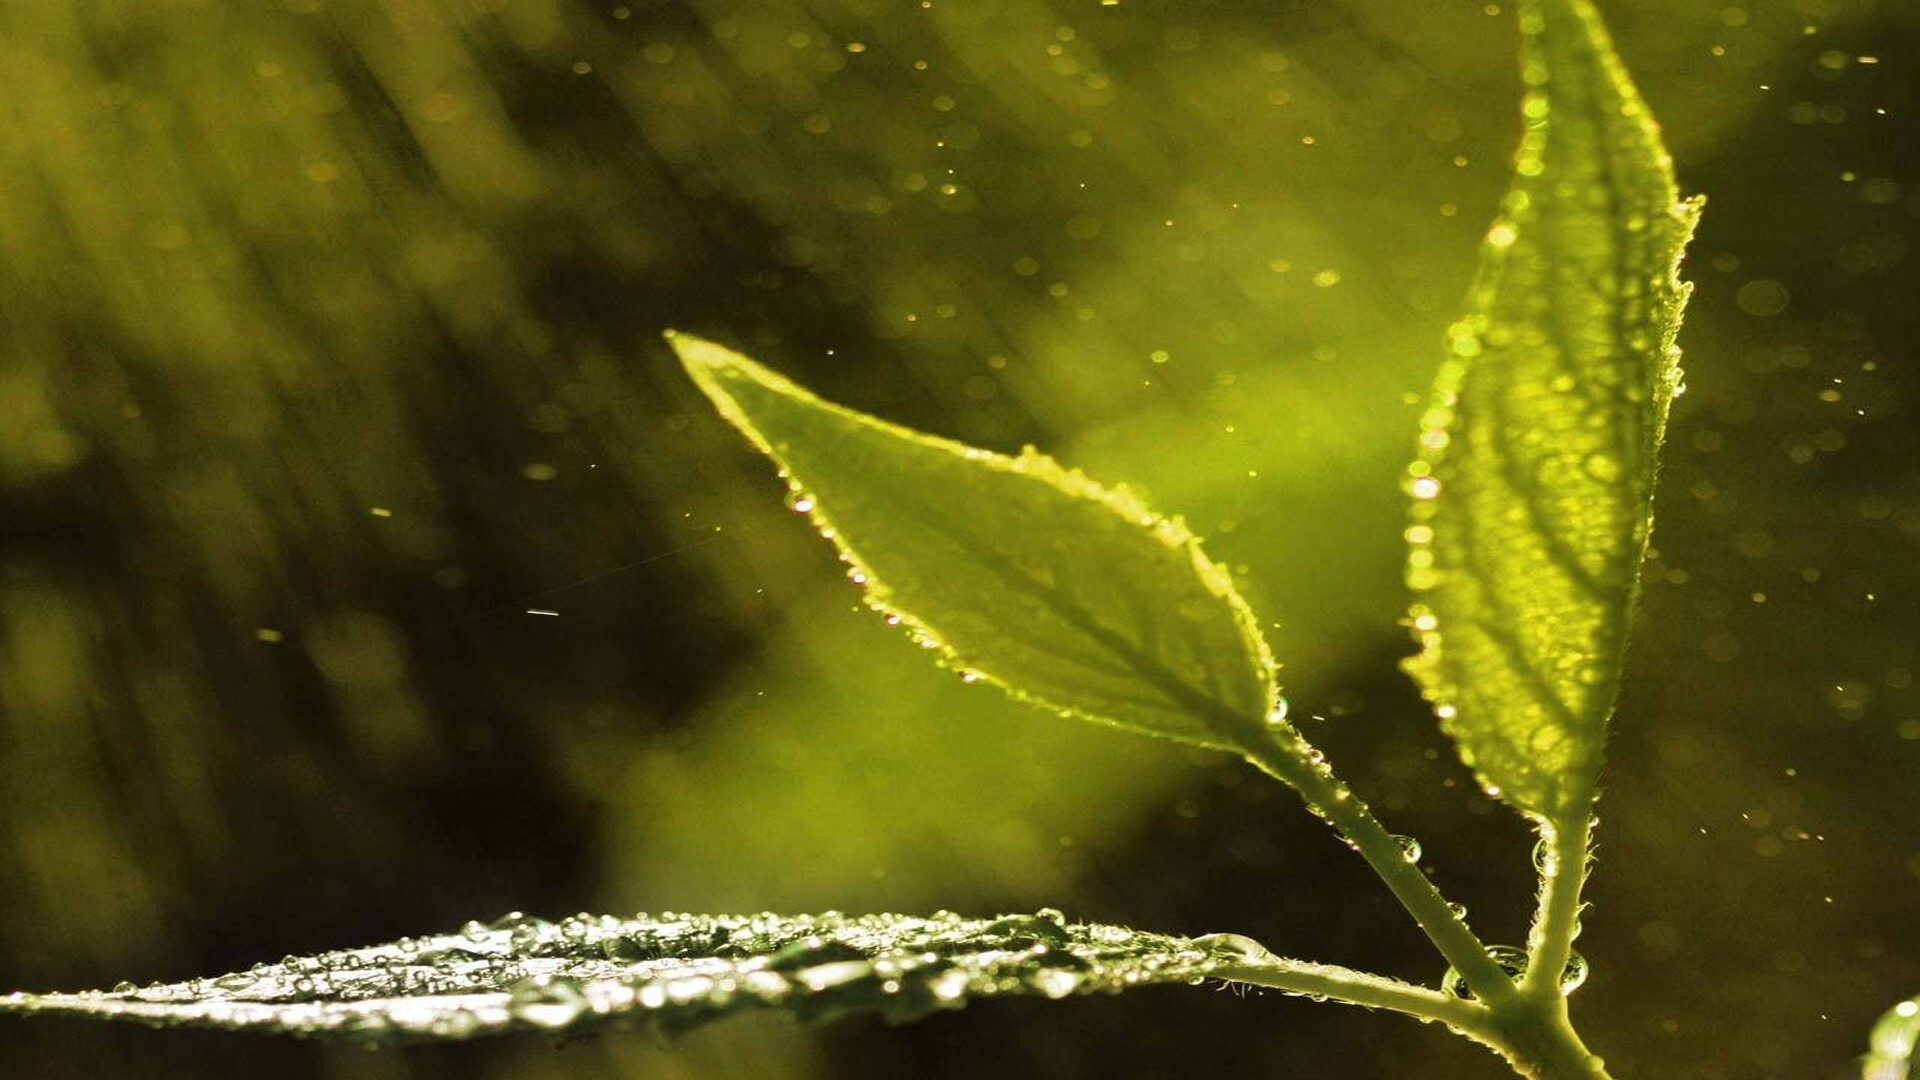 nature rain drops on leaves image hd wallpapers